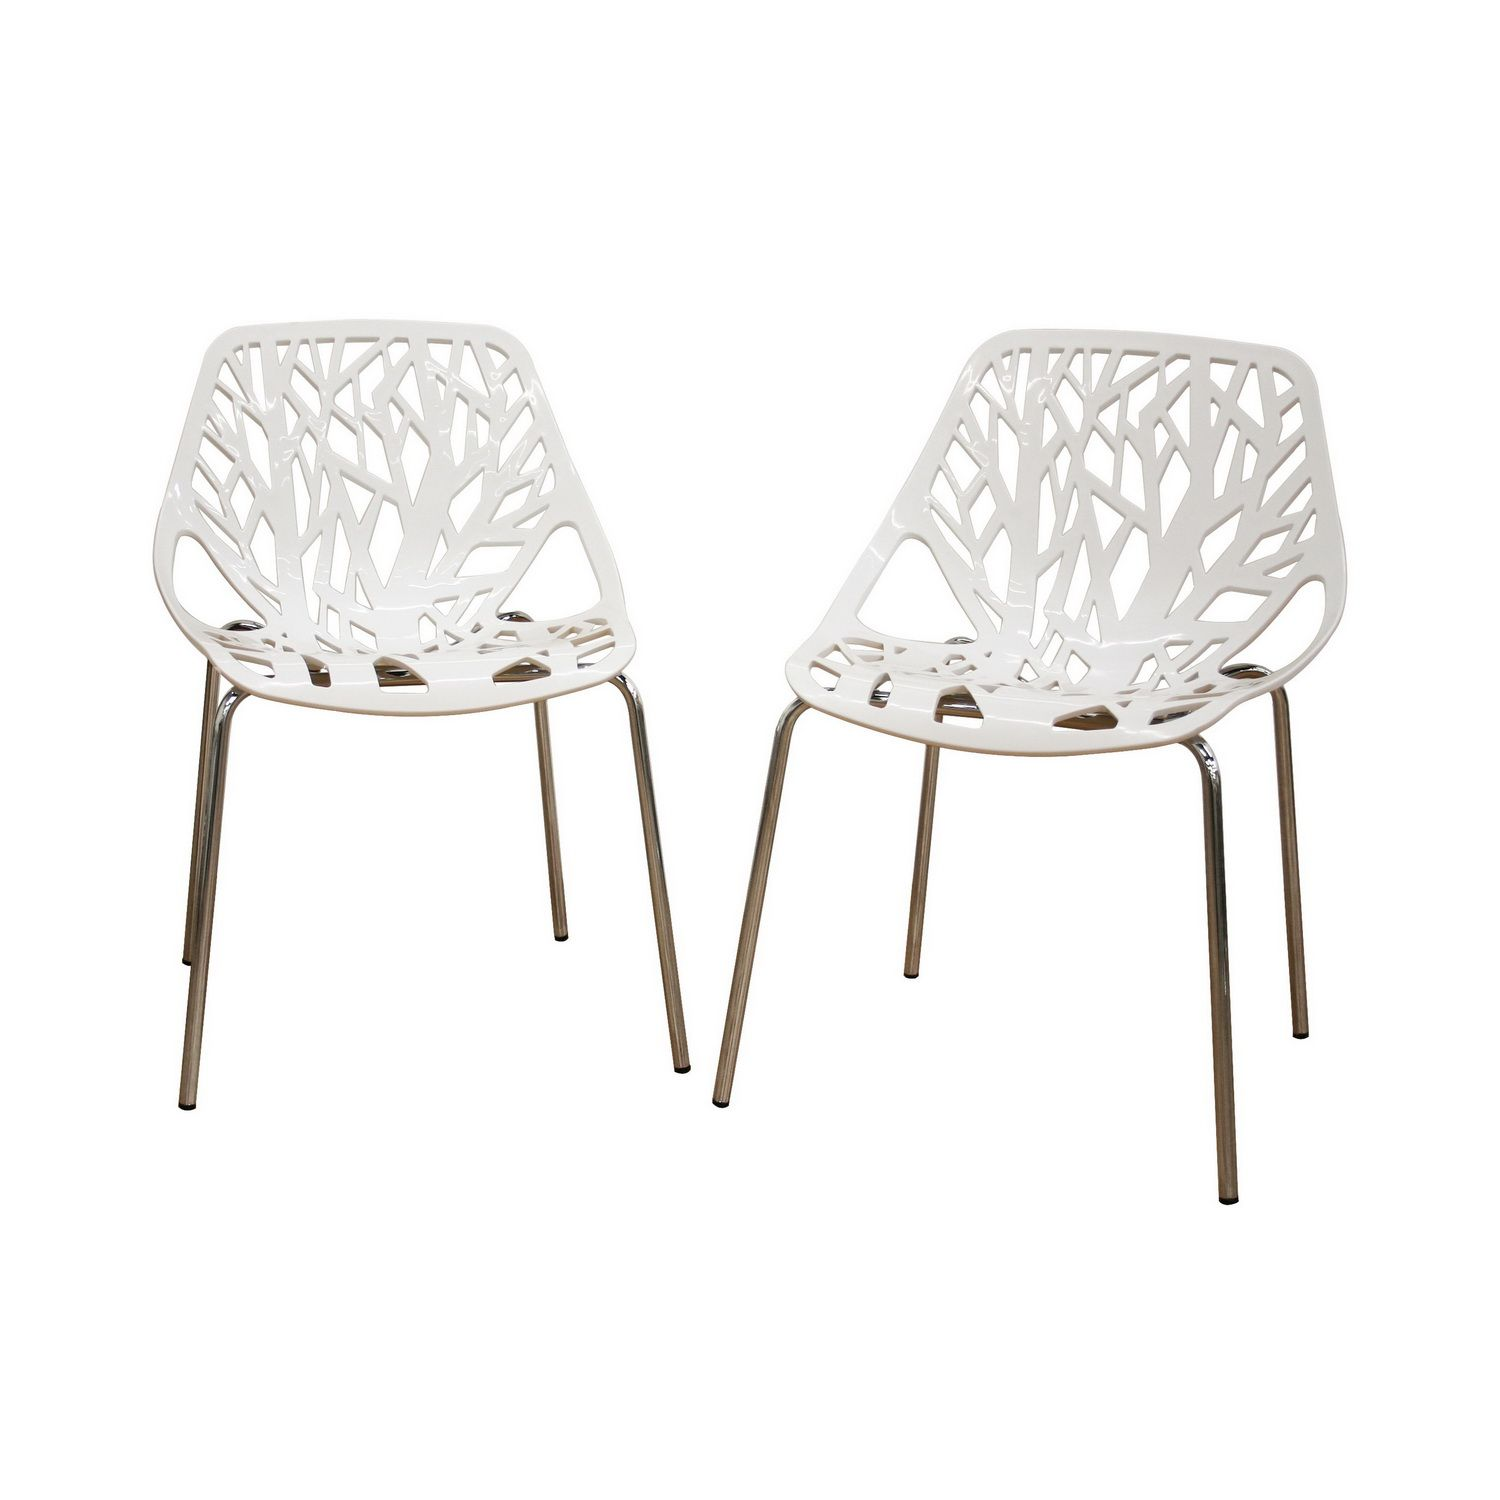 White Plastic Modern Chairs Baxton Studio Birch Sapling White Plastic Accent Dining